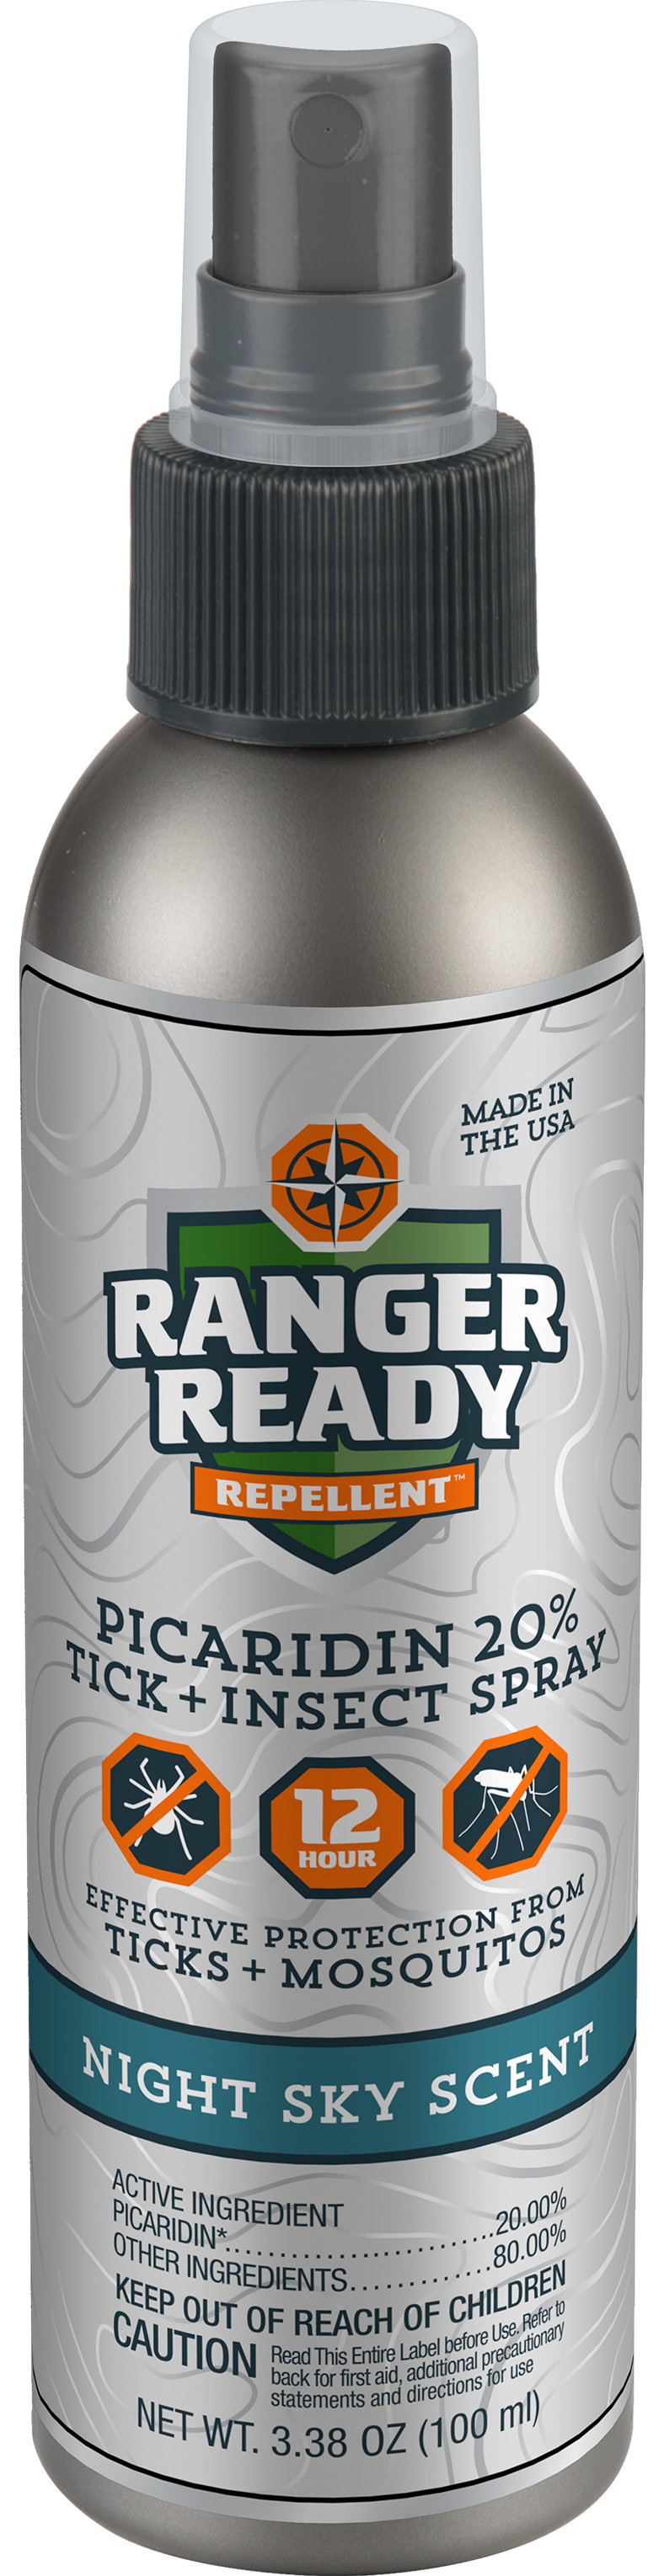 Ranger Ready Picaridin Insect Repellent- Night Sky Scent